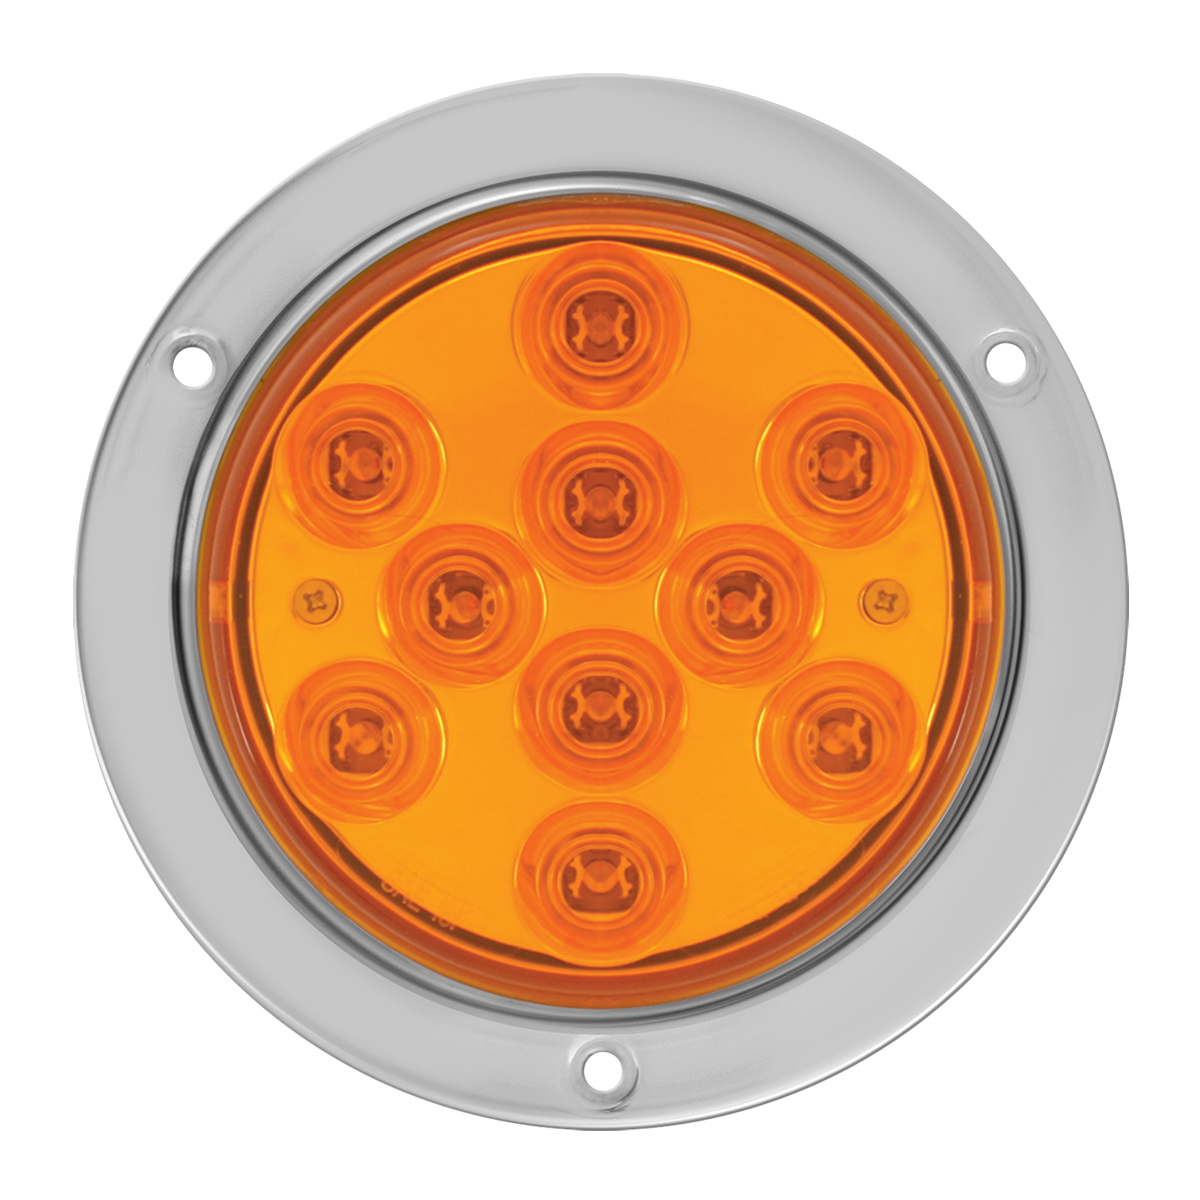 "76850 4"" Mega 10 Plus LED Light w/ Stainless Steel Bezel"